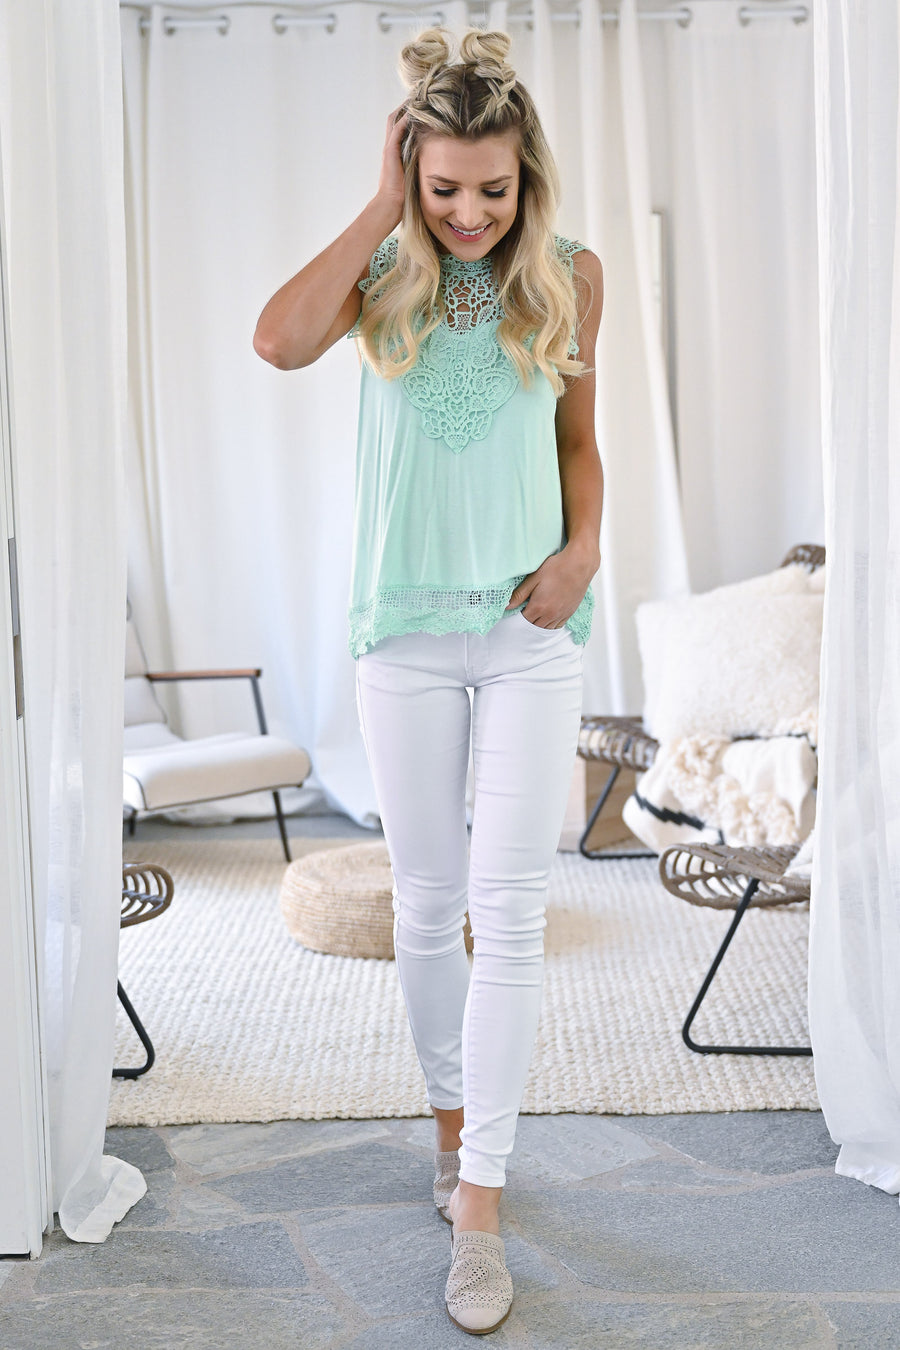 Mimosa Mornings Crochet Top - Mint sleeveless lace knit top closet candy front